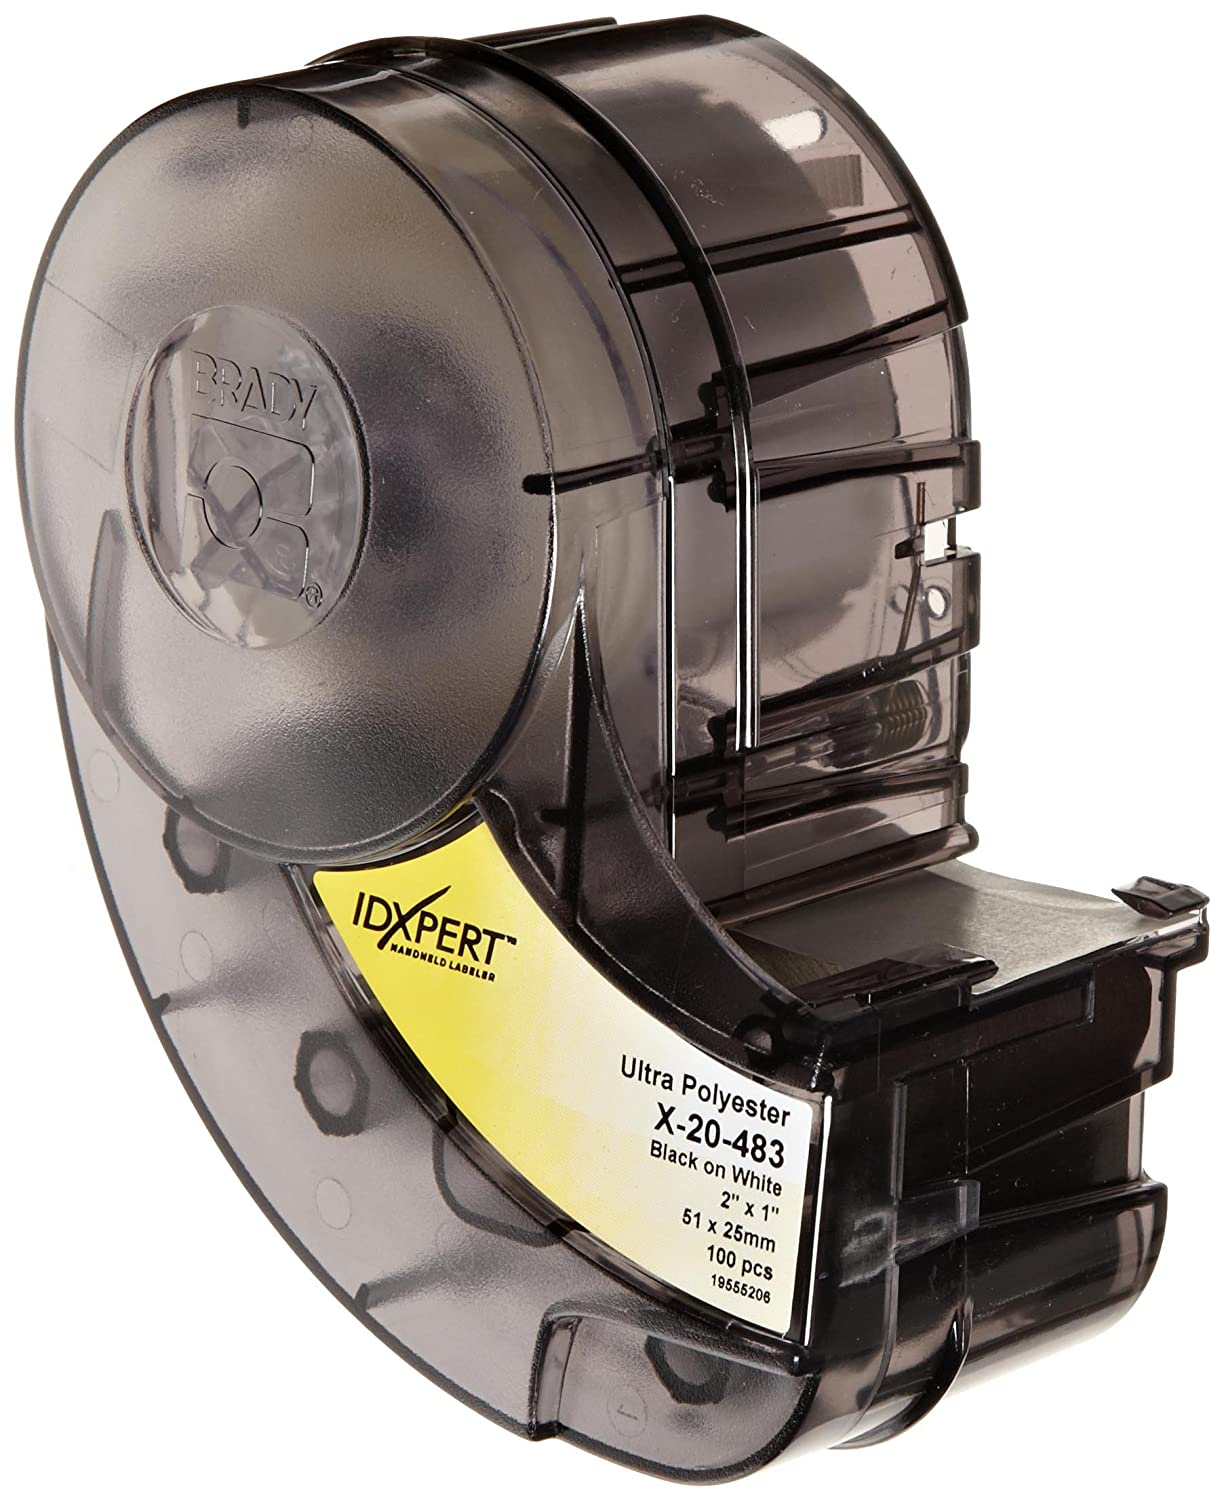 100 Per Cartridge 2 Width Brady X-20-483 IDXPERT 1 Height B-483 Ultra Aggressive Polyester Black On White Color Label